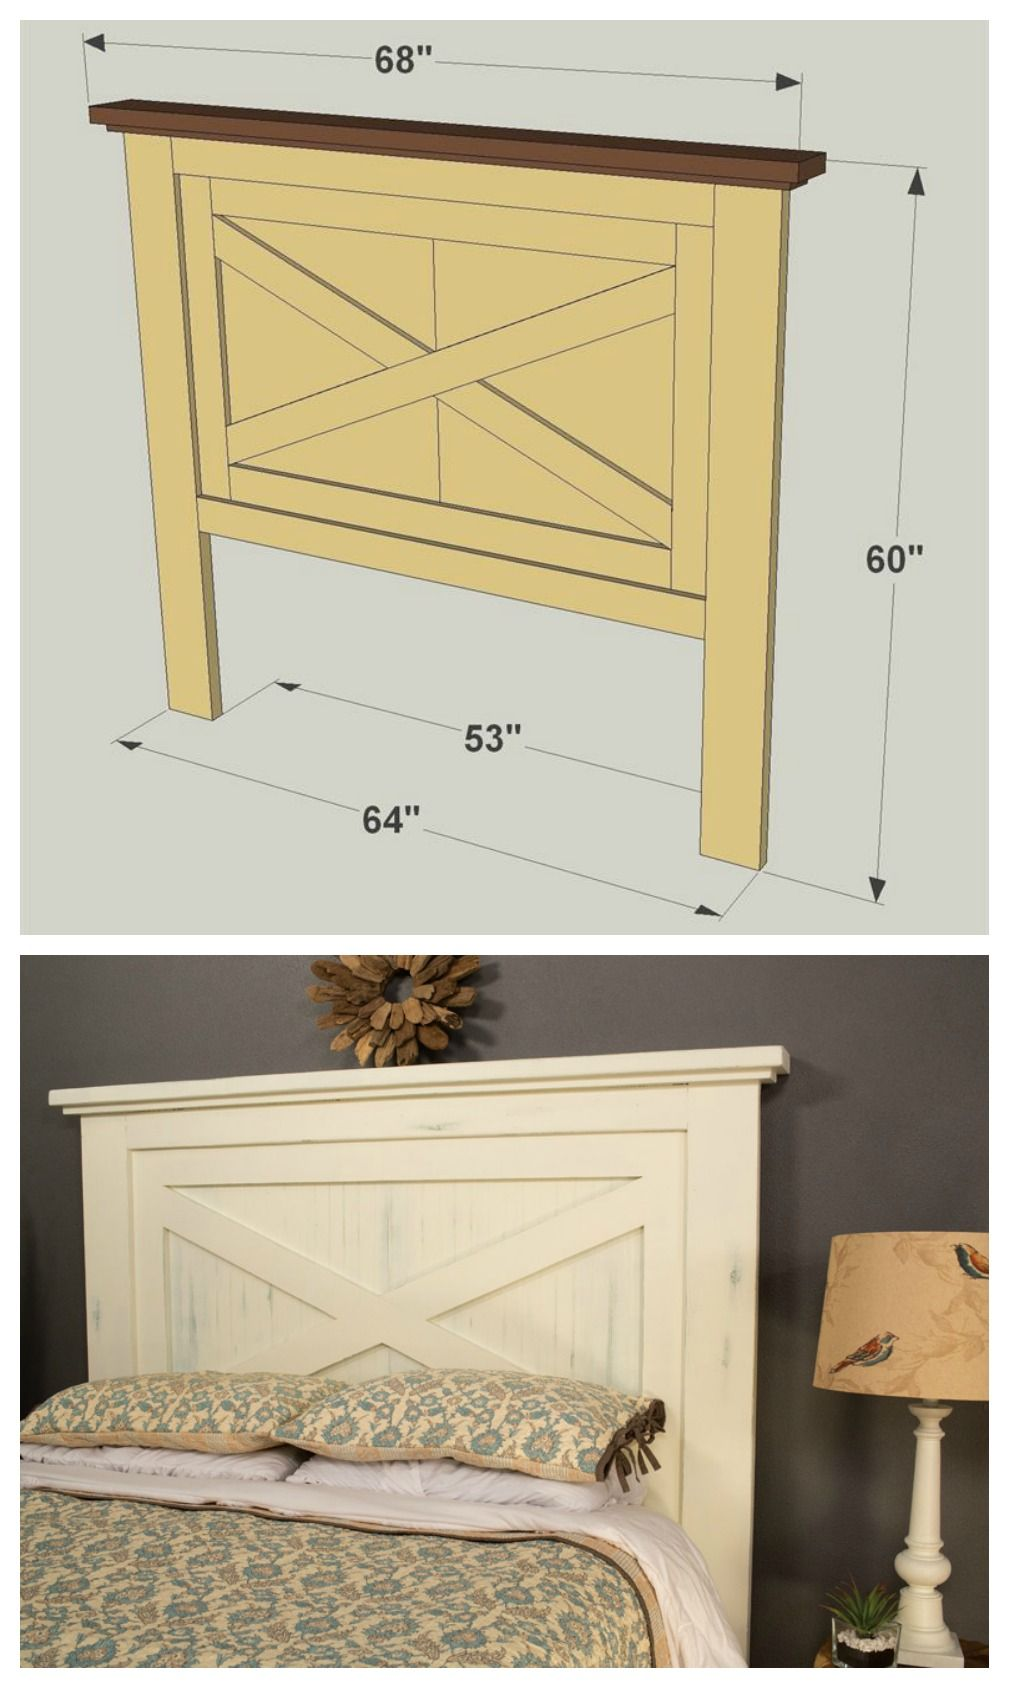 Outdoor Furniture Plans Diy Crafts Blog Farmhouse Headboard Bedroom Diy Diy Furniture